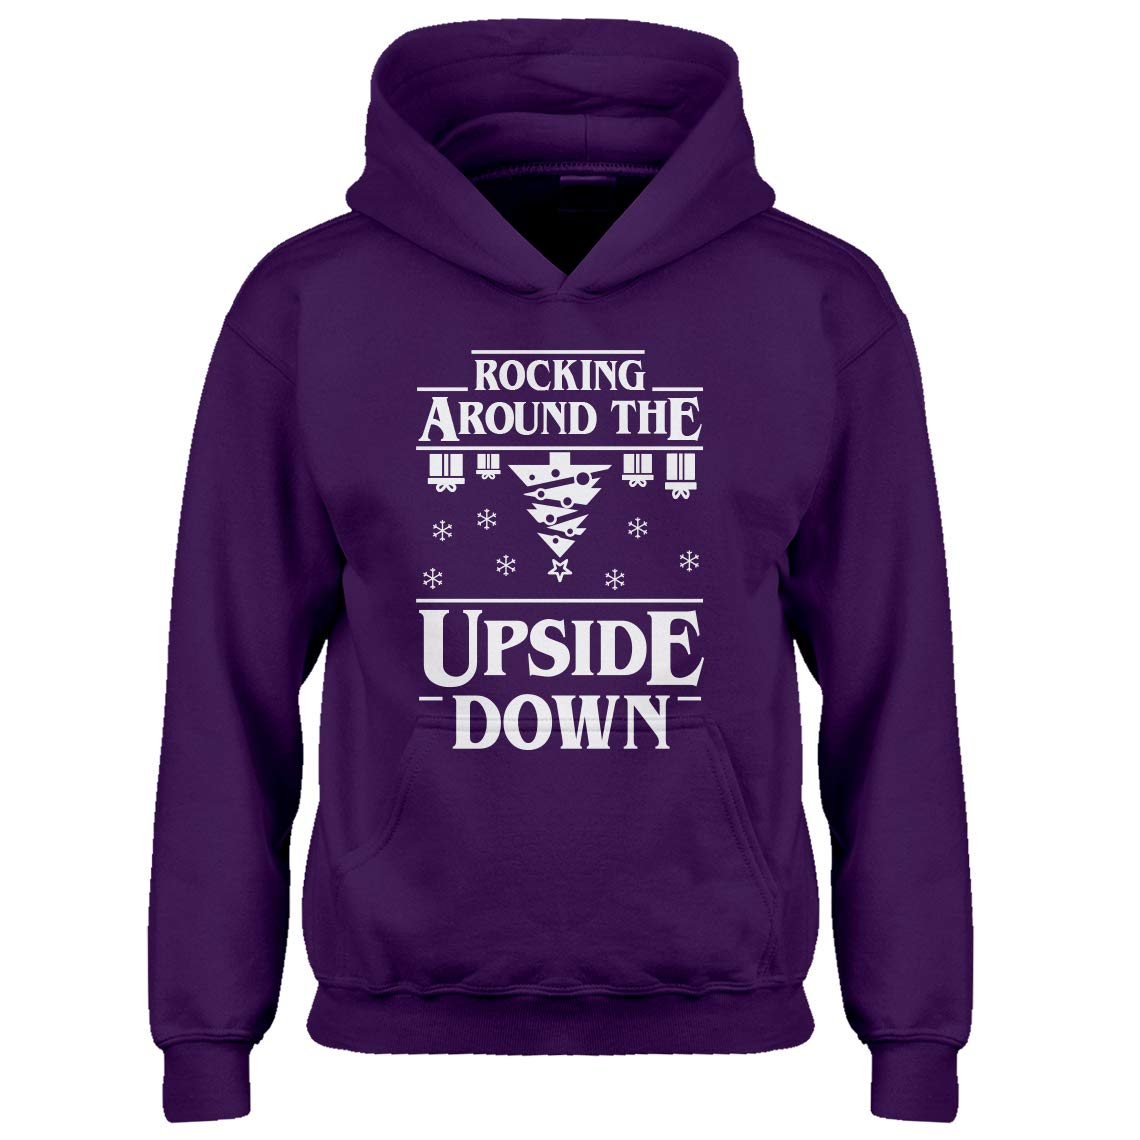 Indica Plateau Youth Rocking Around The Upside Down Kids Hoodie